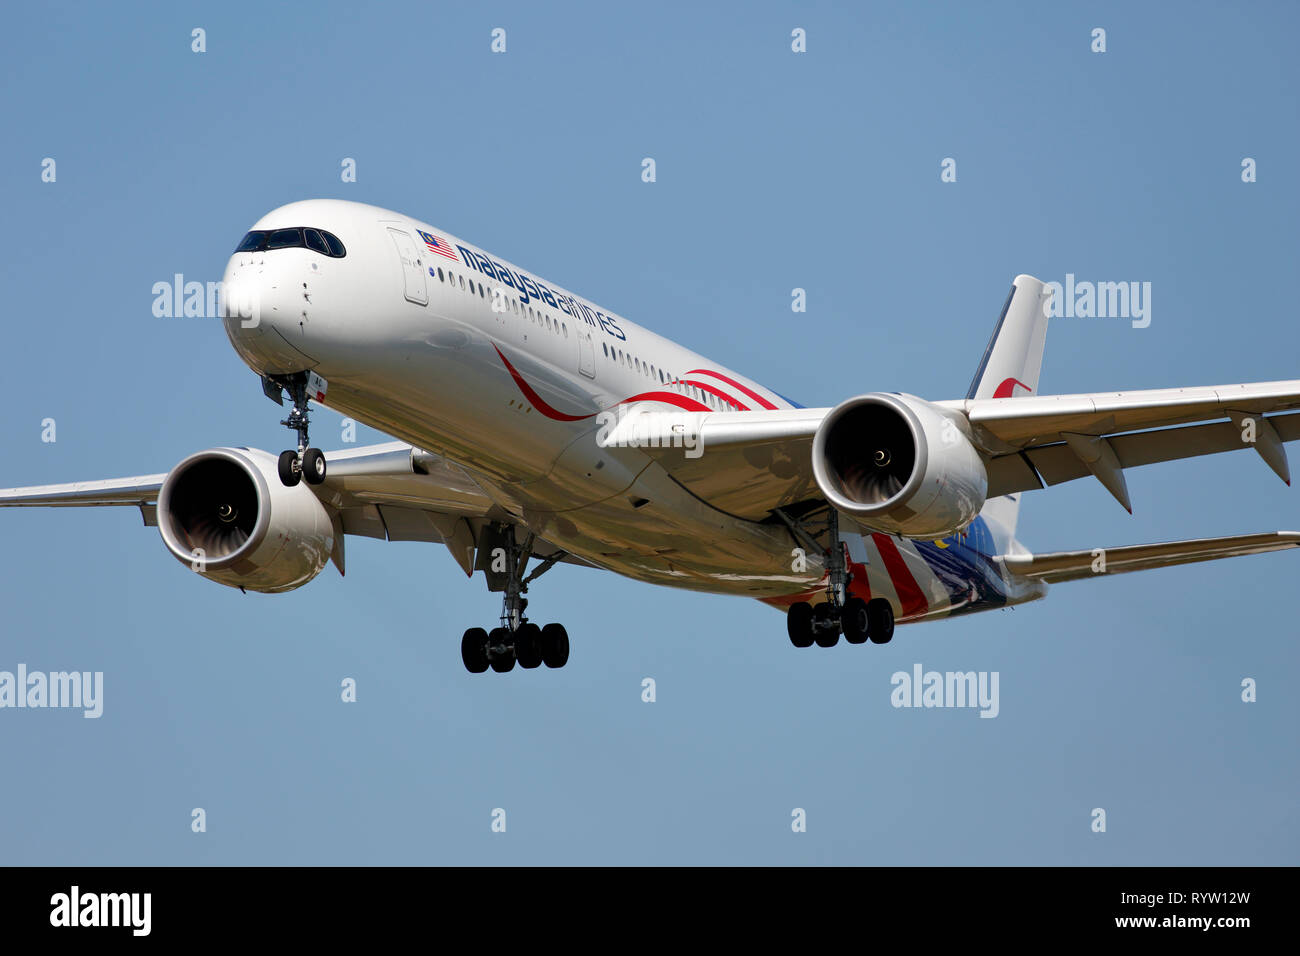 9M-MAC Malaysia Airlines Airbus A350-900 arriving at London Heathrow Airport - Stock Image